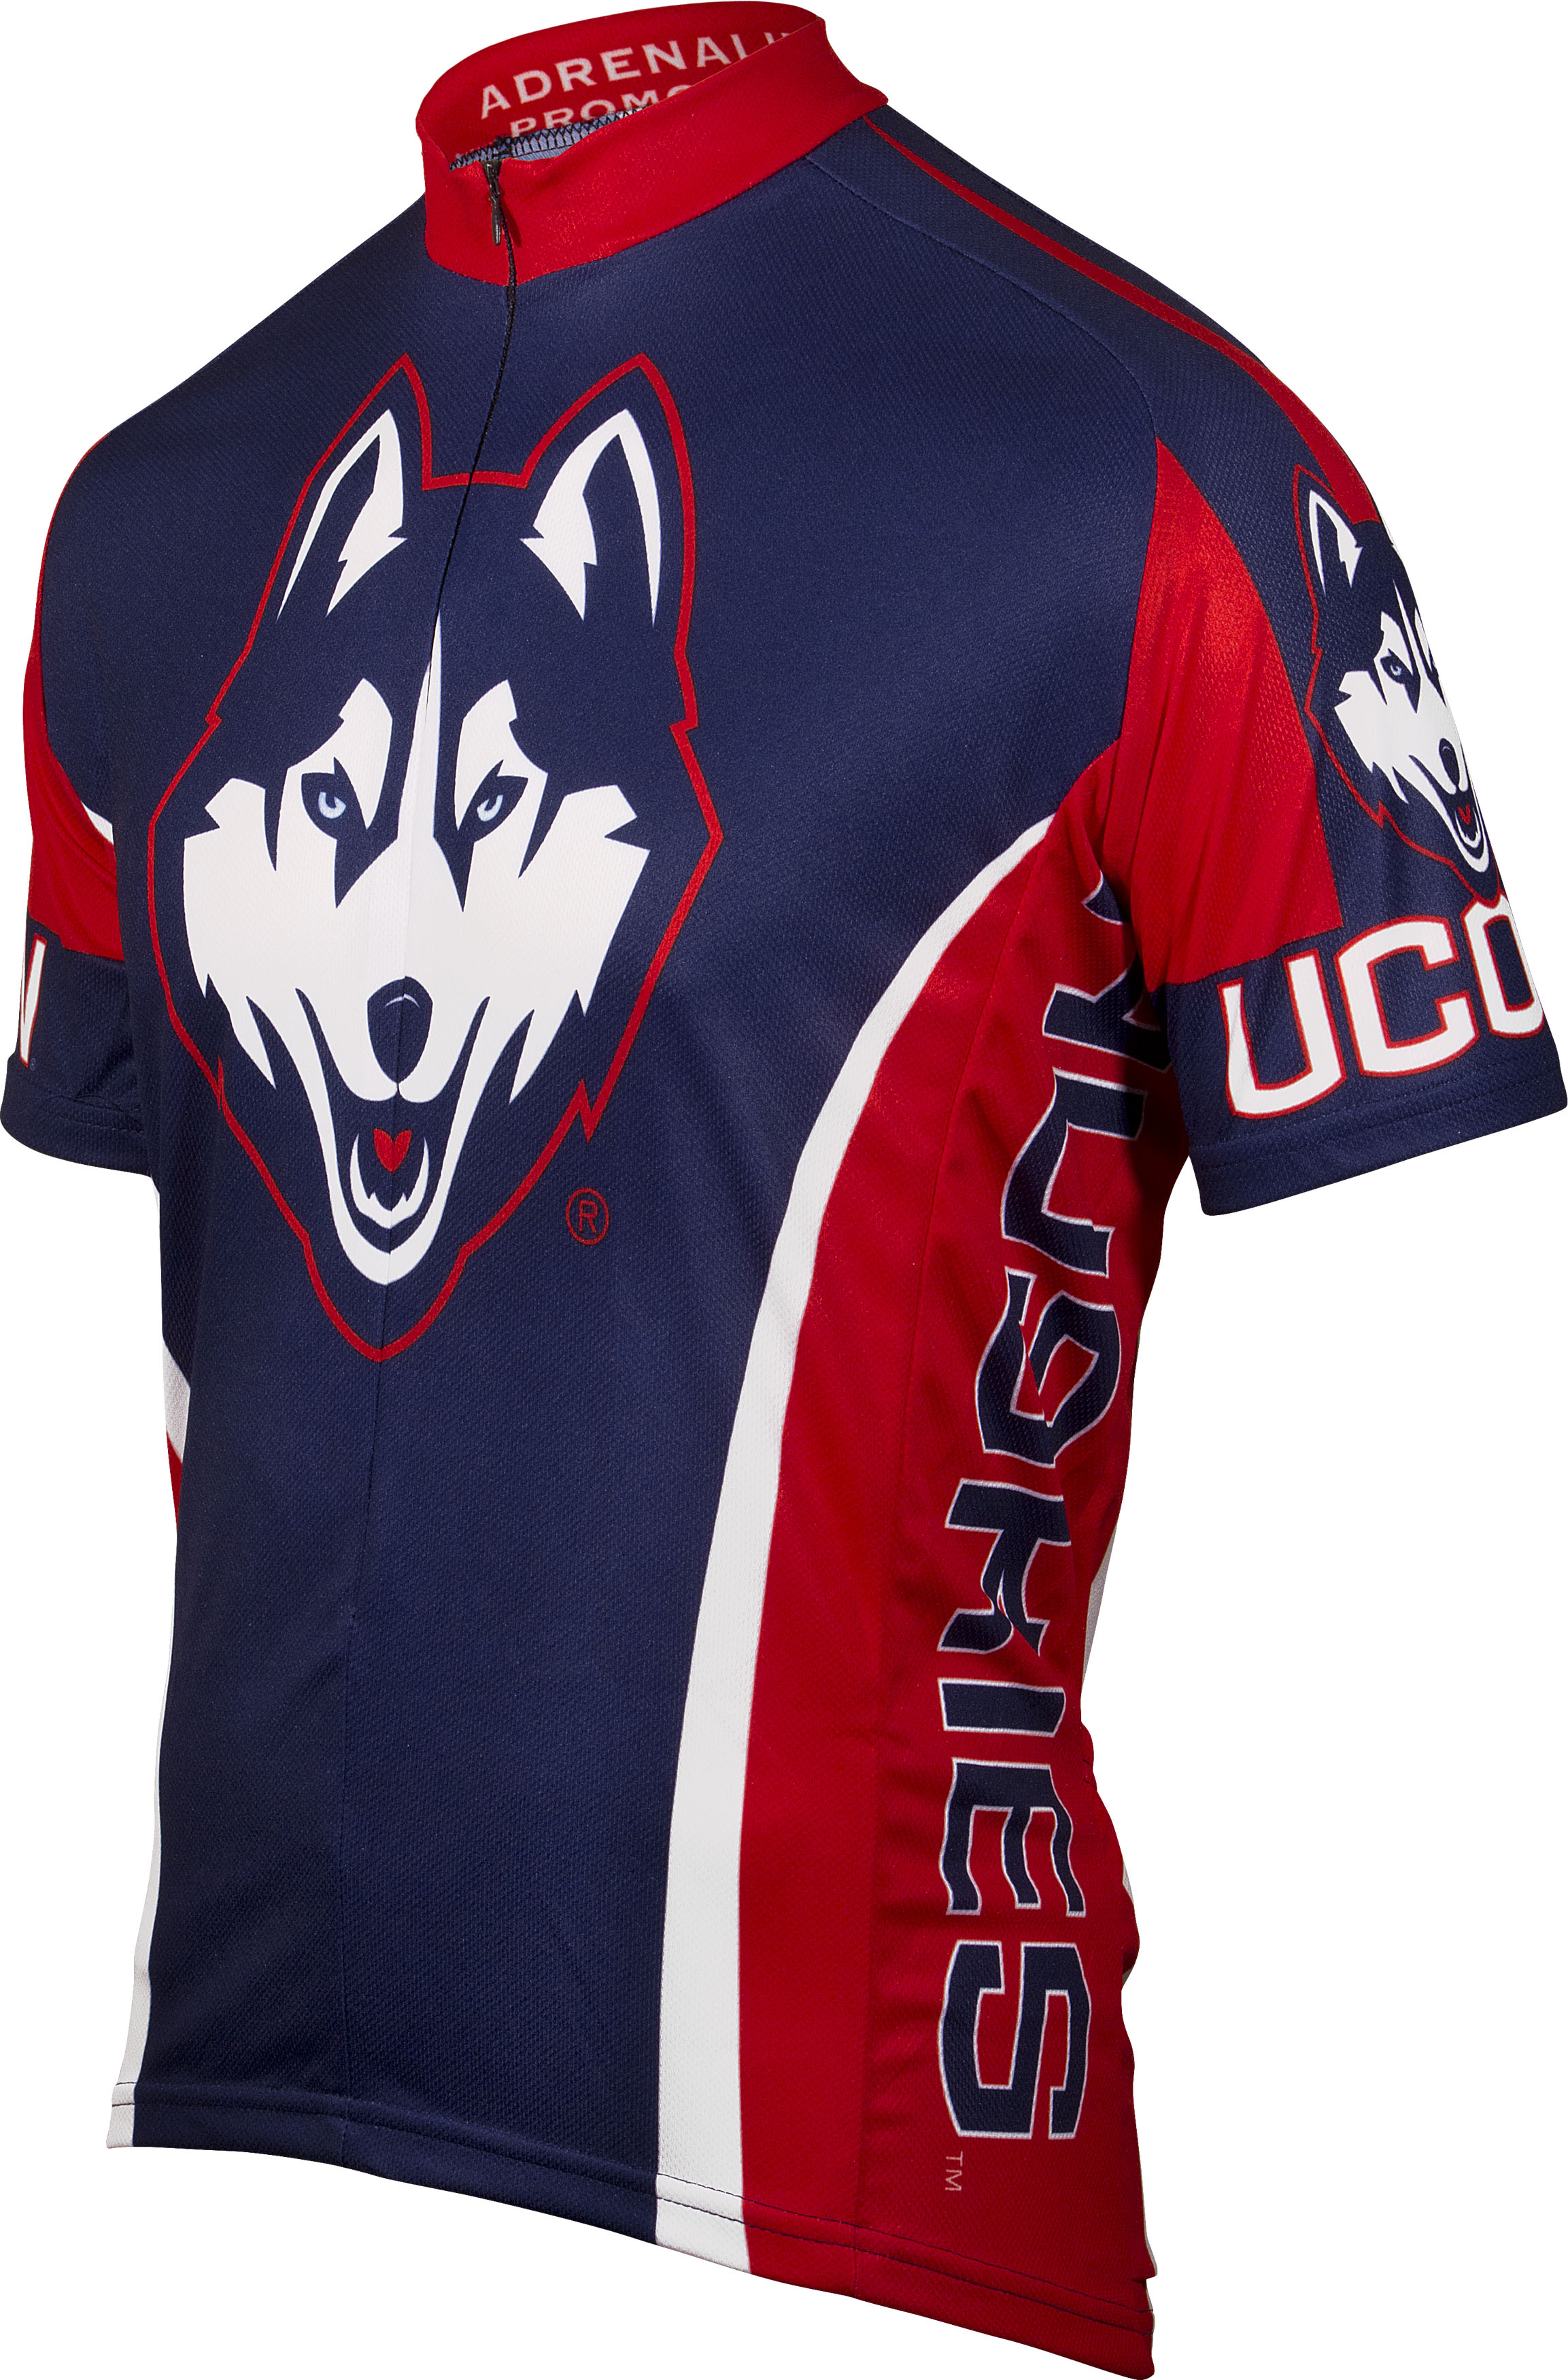 University of Connecticut (UCONN) Cycling Jersey 3XL